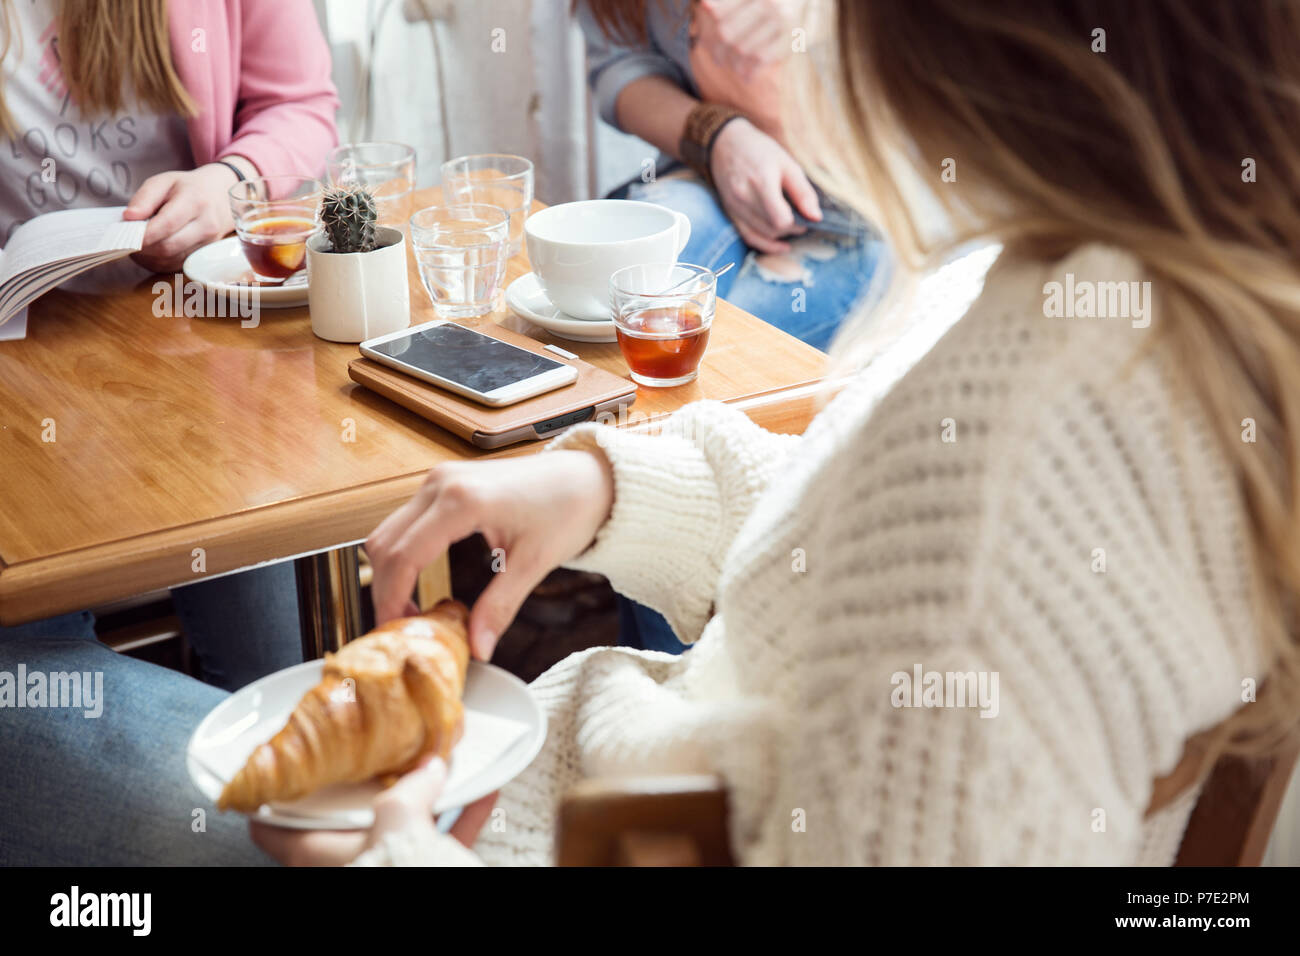 Women chatting over coffee and croissant in cafe - Stock Image